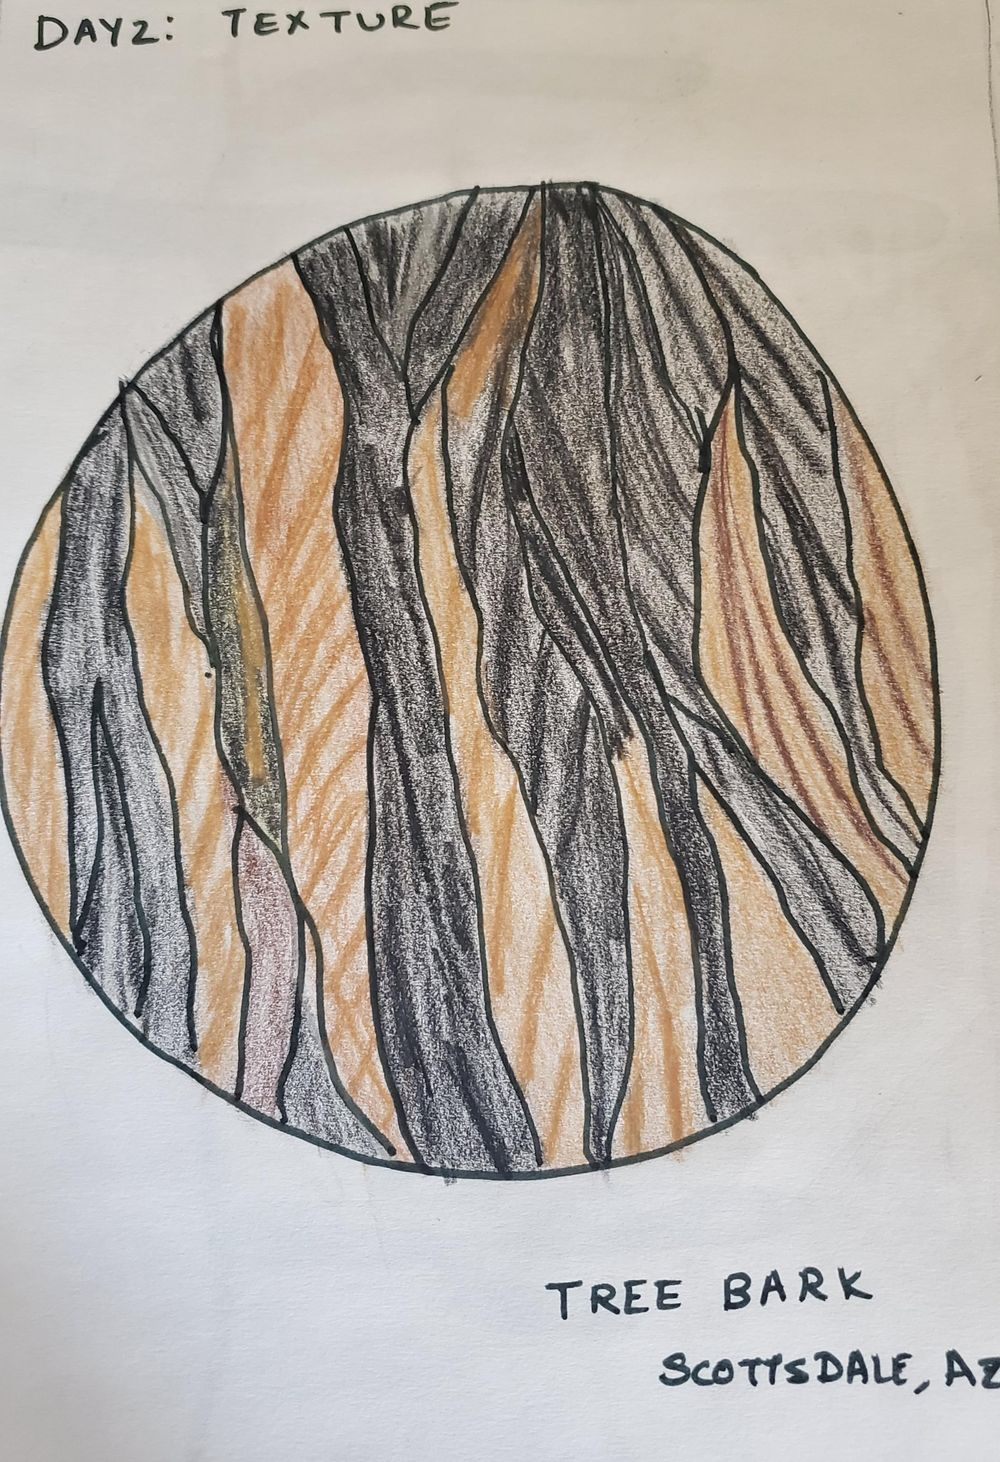 7 day nature journal - image 2 - student project